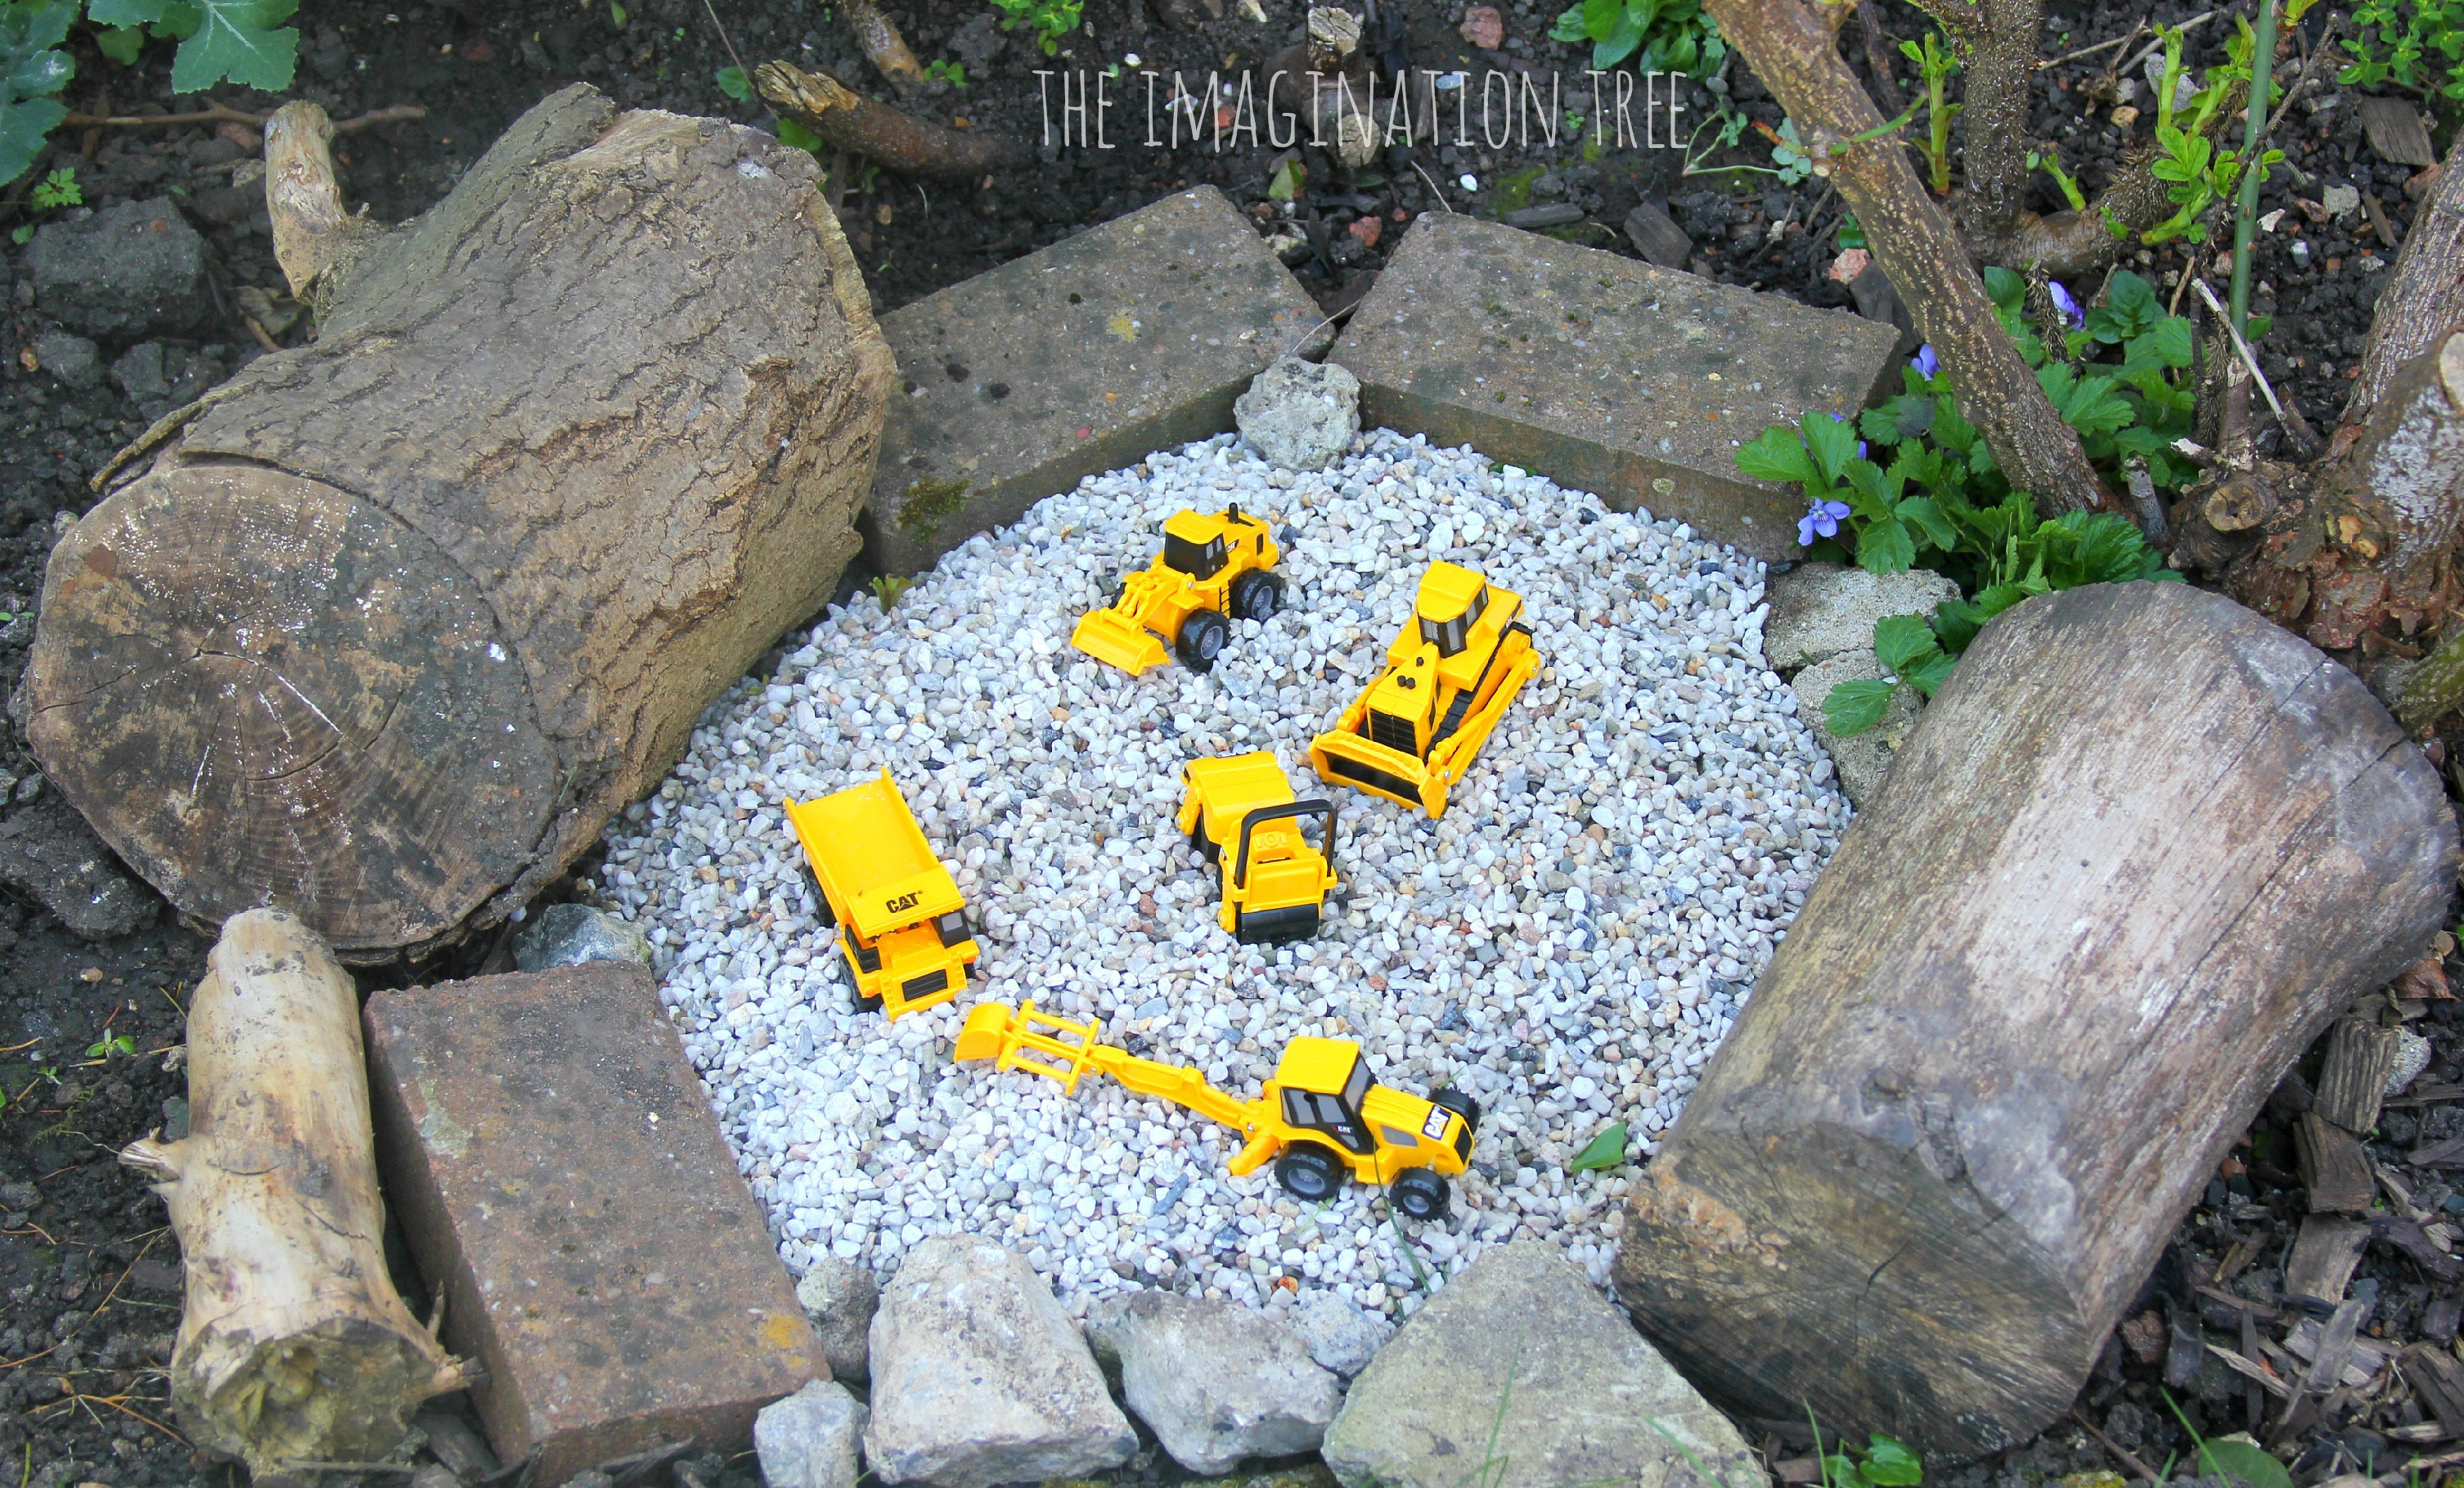 Gardening In Miniature By Janit Calono With Photo Log Of Creating A Fairy Garden For My Granddaughter further 541206080193222199 in addition Landscape Photos furthermore Native Garden Landscape Design Eltham moreover Garden Waterfalls. on rock garden ideas